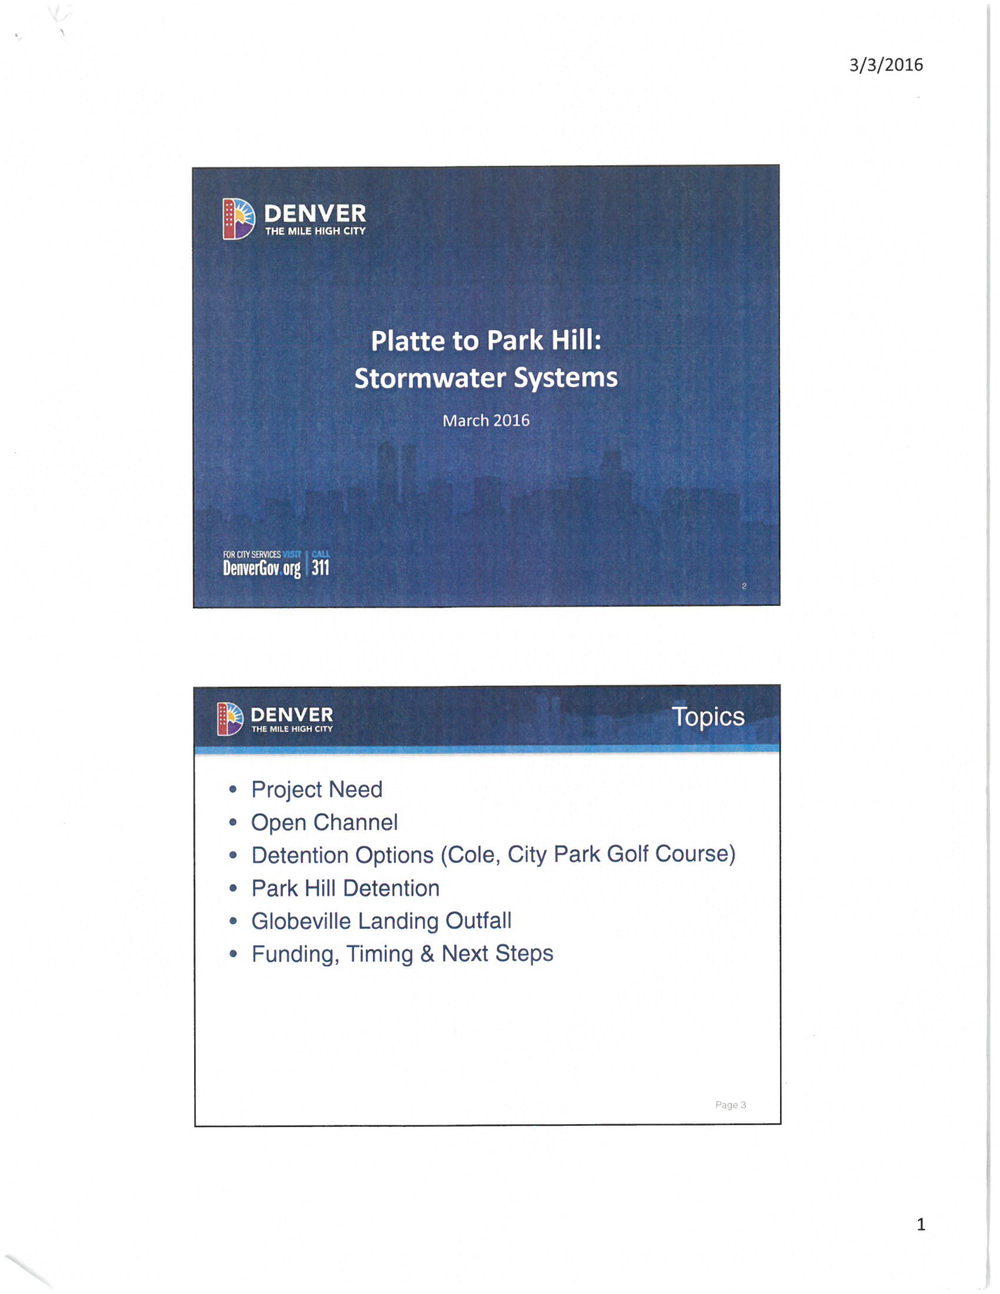 Platte to Park Hill Stormwater Systems